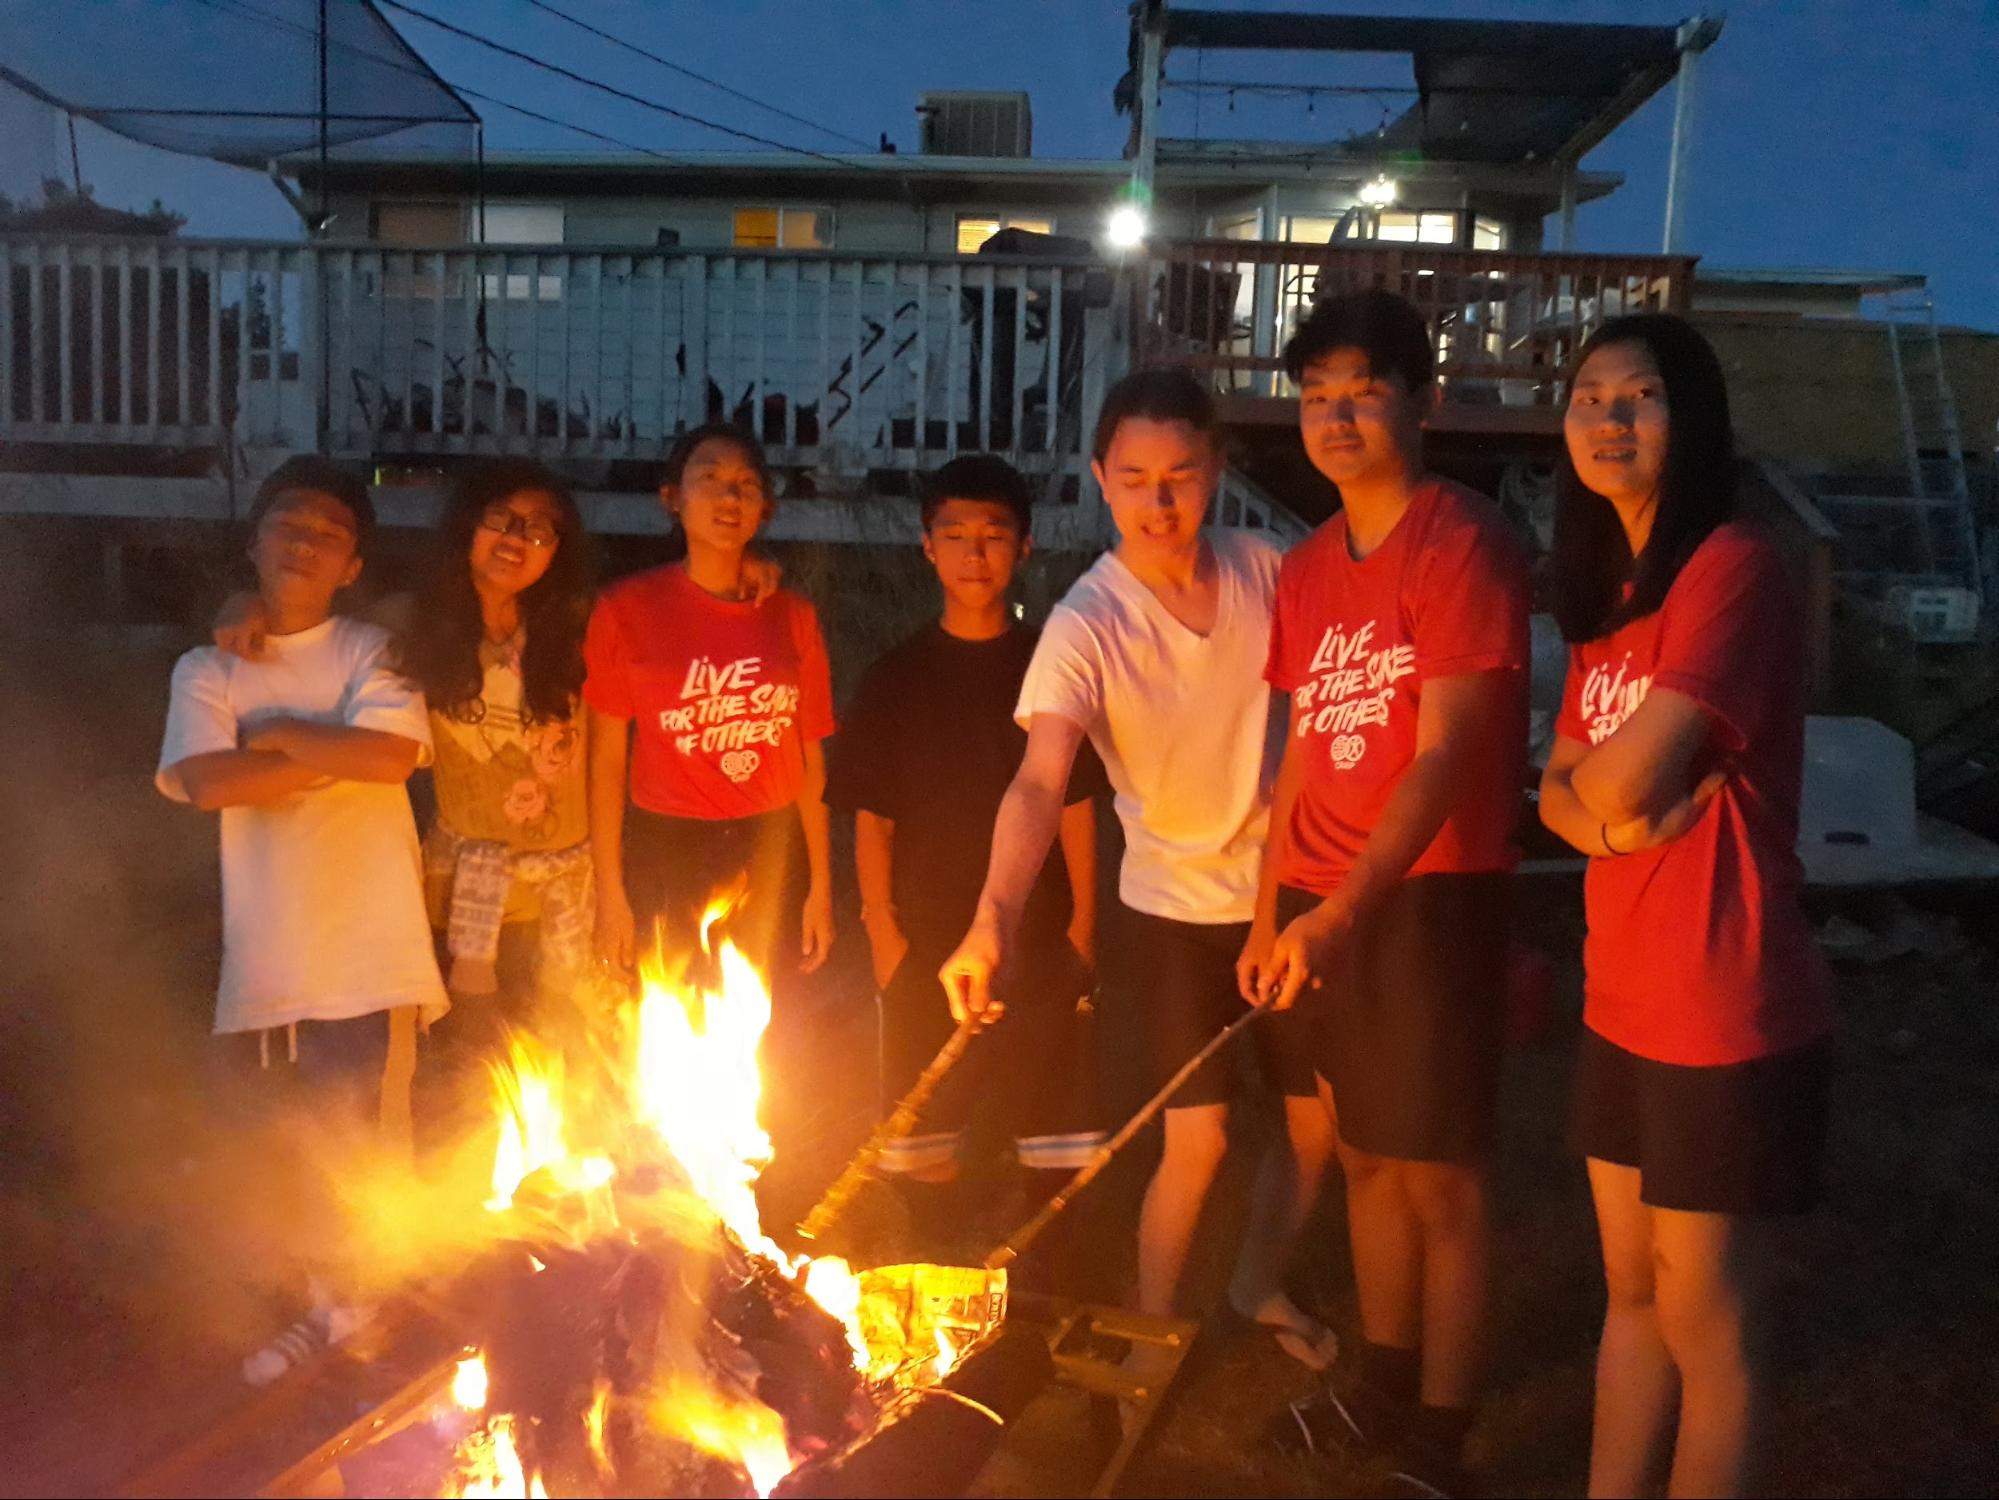 Several participants of the retreat roast marshmallows around the fire pit before joining in a devotional song session.